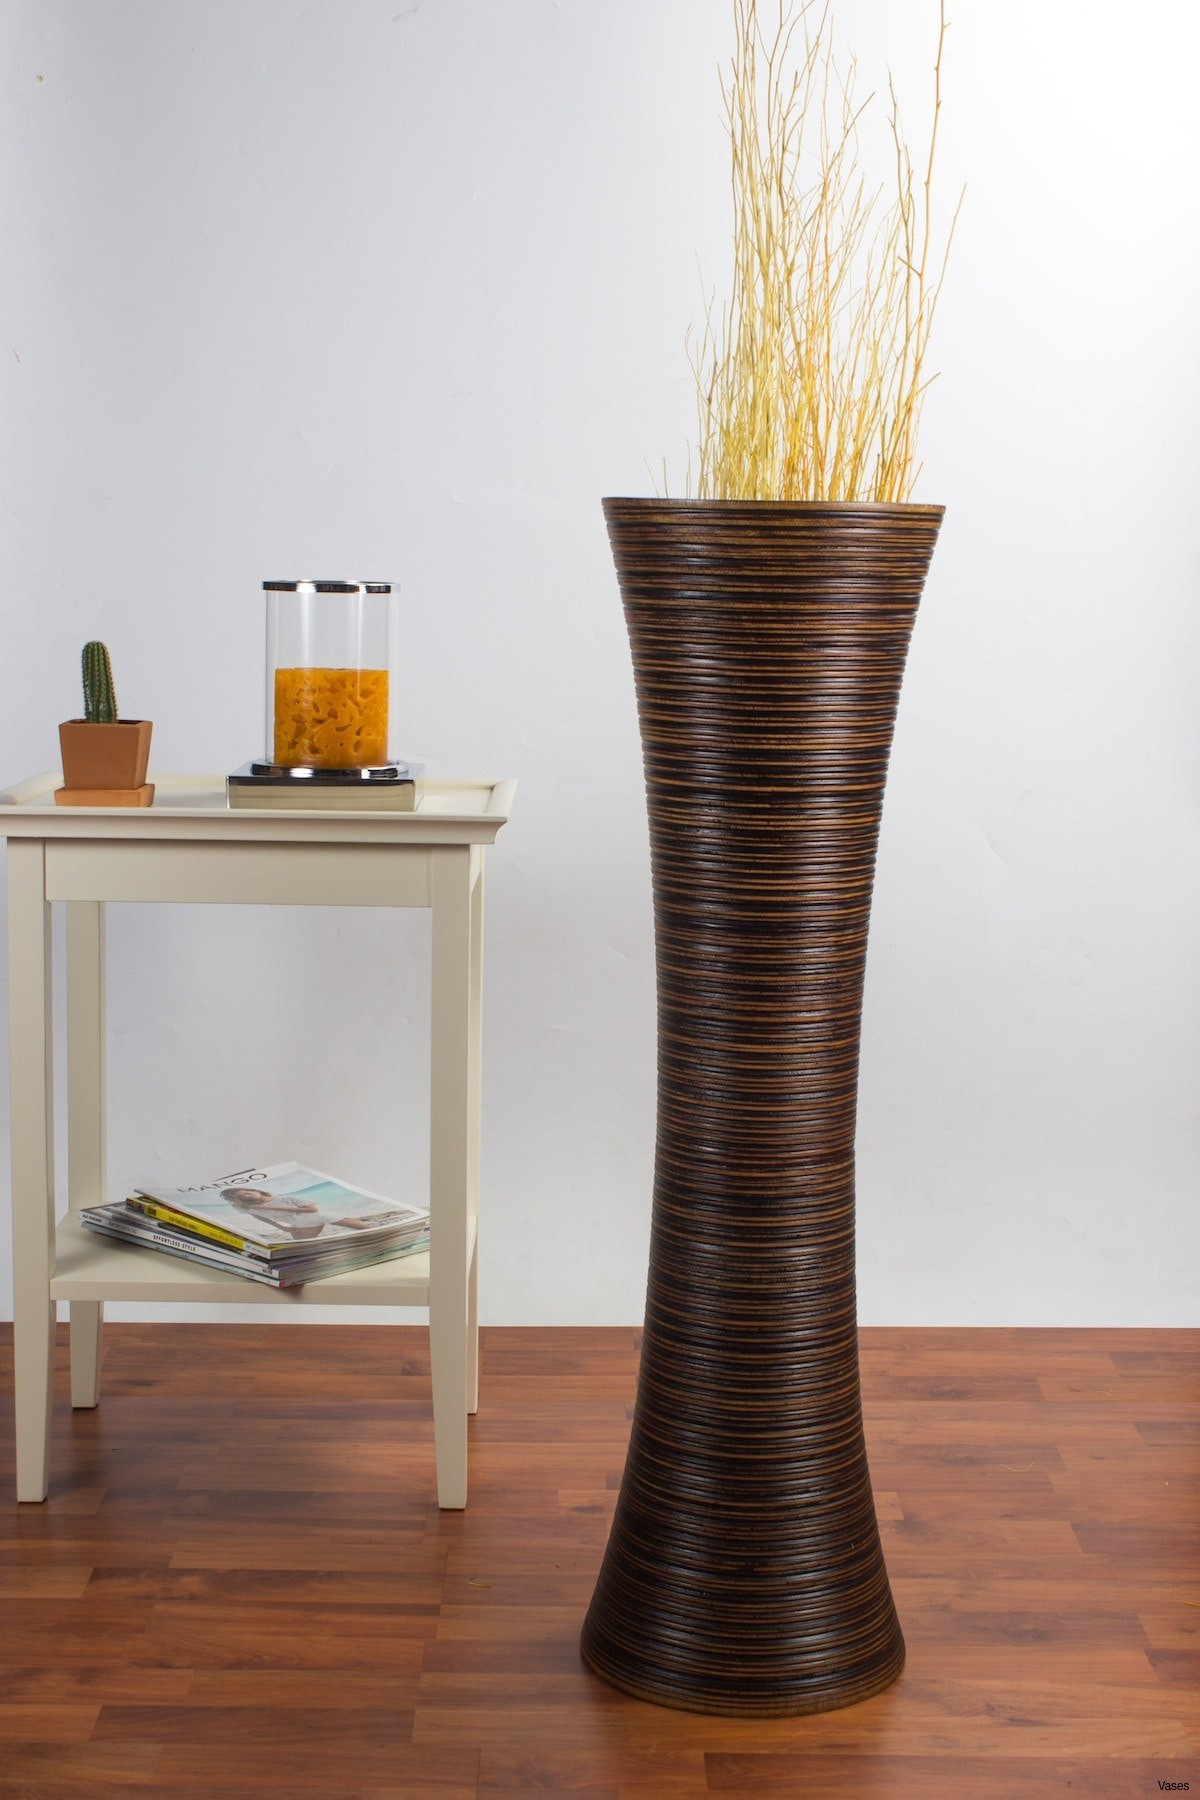 glass vases wholesale miami of 20 unique very tall decorative vases bogekompresorturkiye com inside decorative floor vases fresh d dkbrw 5749 1h vases tall brown i 0d design ideas